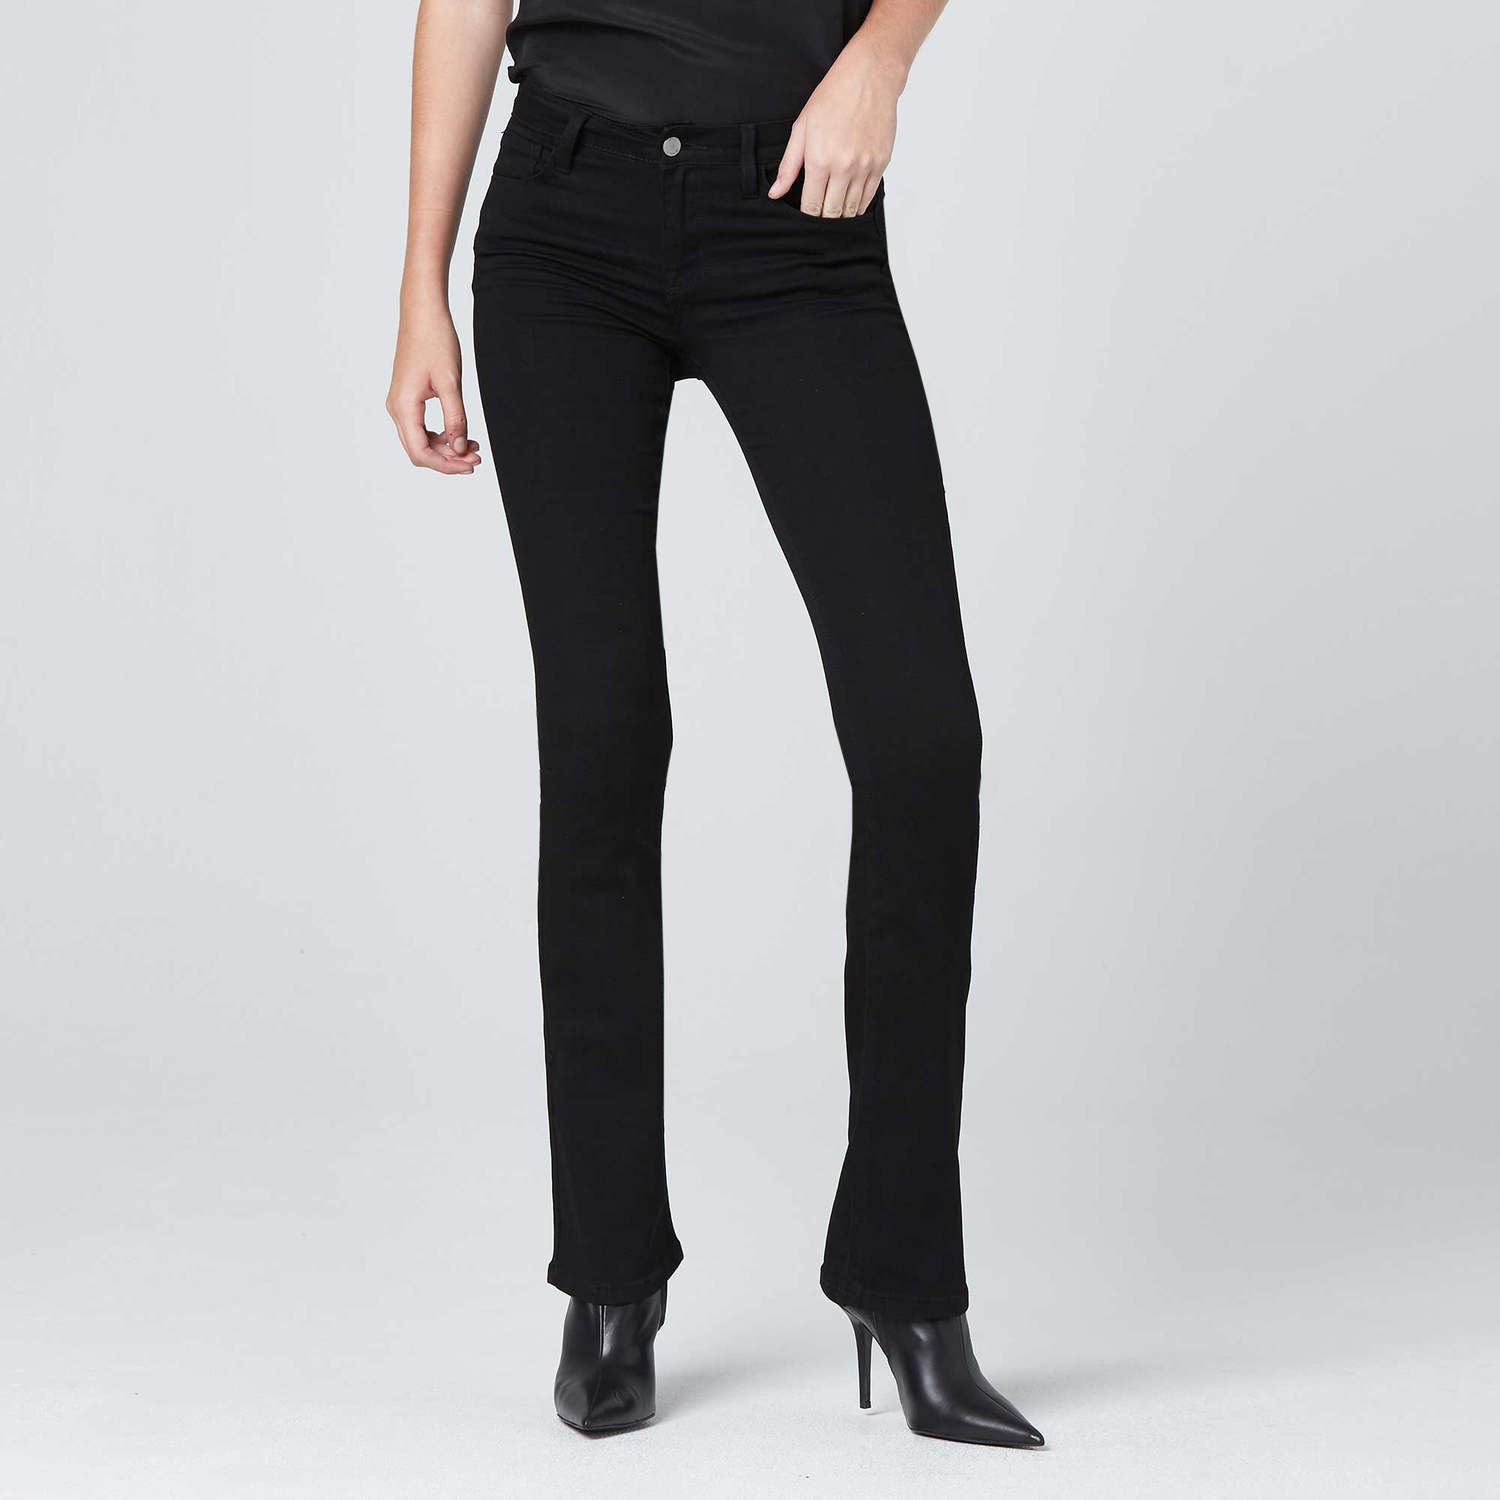 25ea43a3688 Womens Mid Rise Skinny Flare Jeans In Black  85